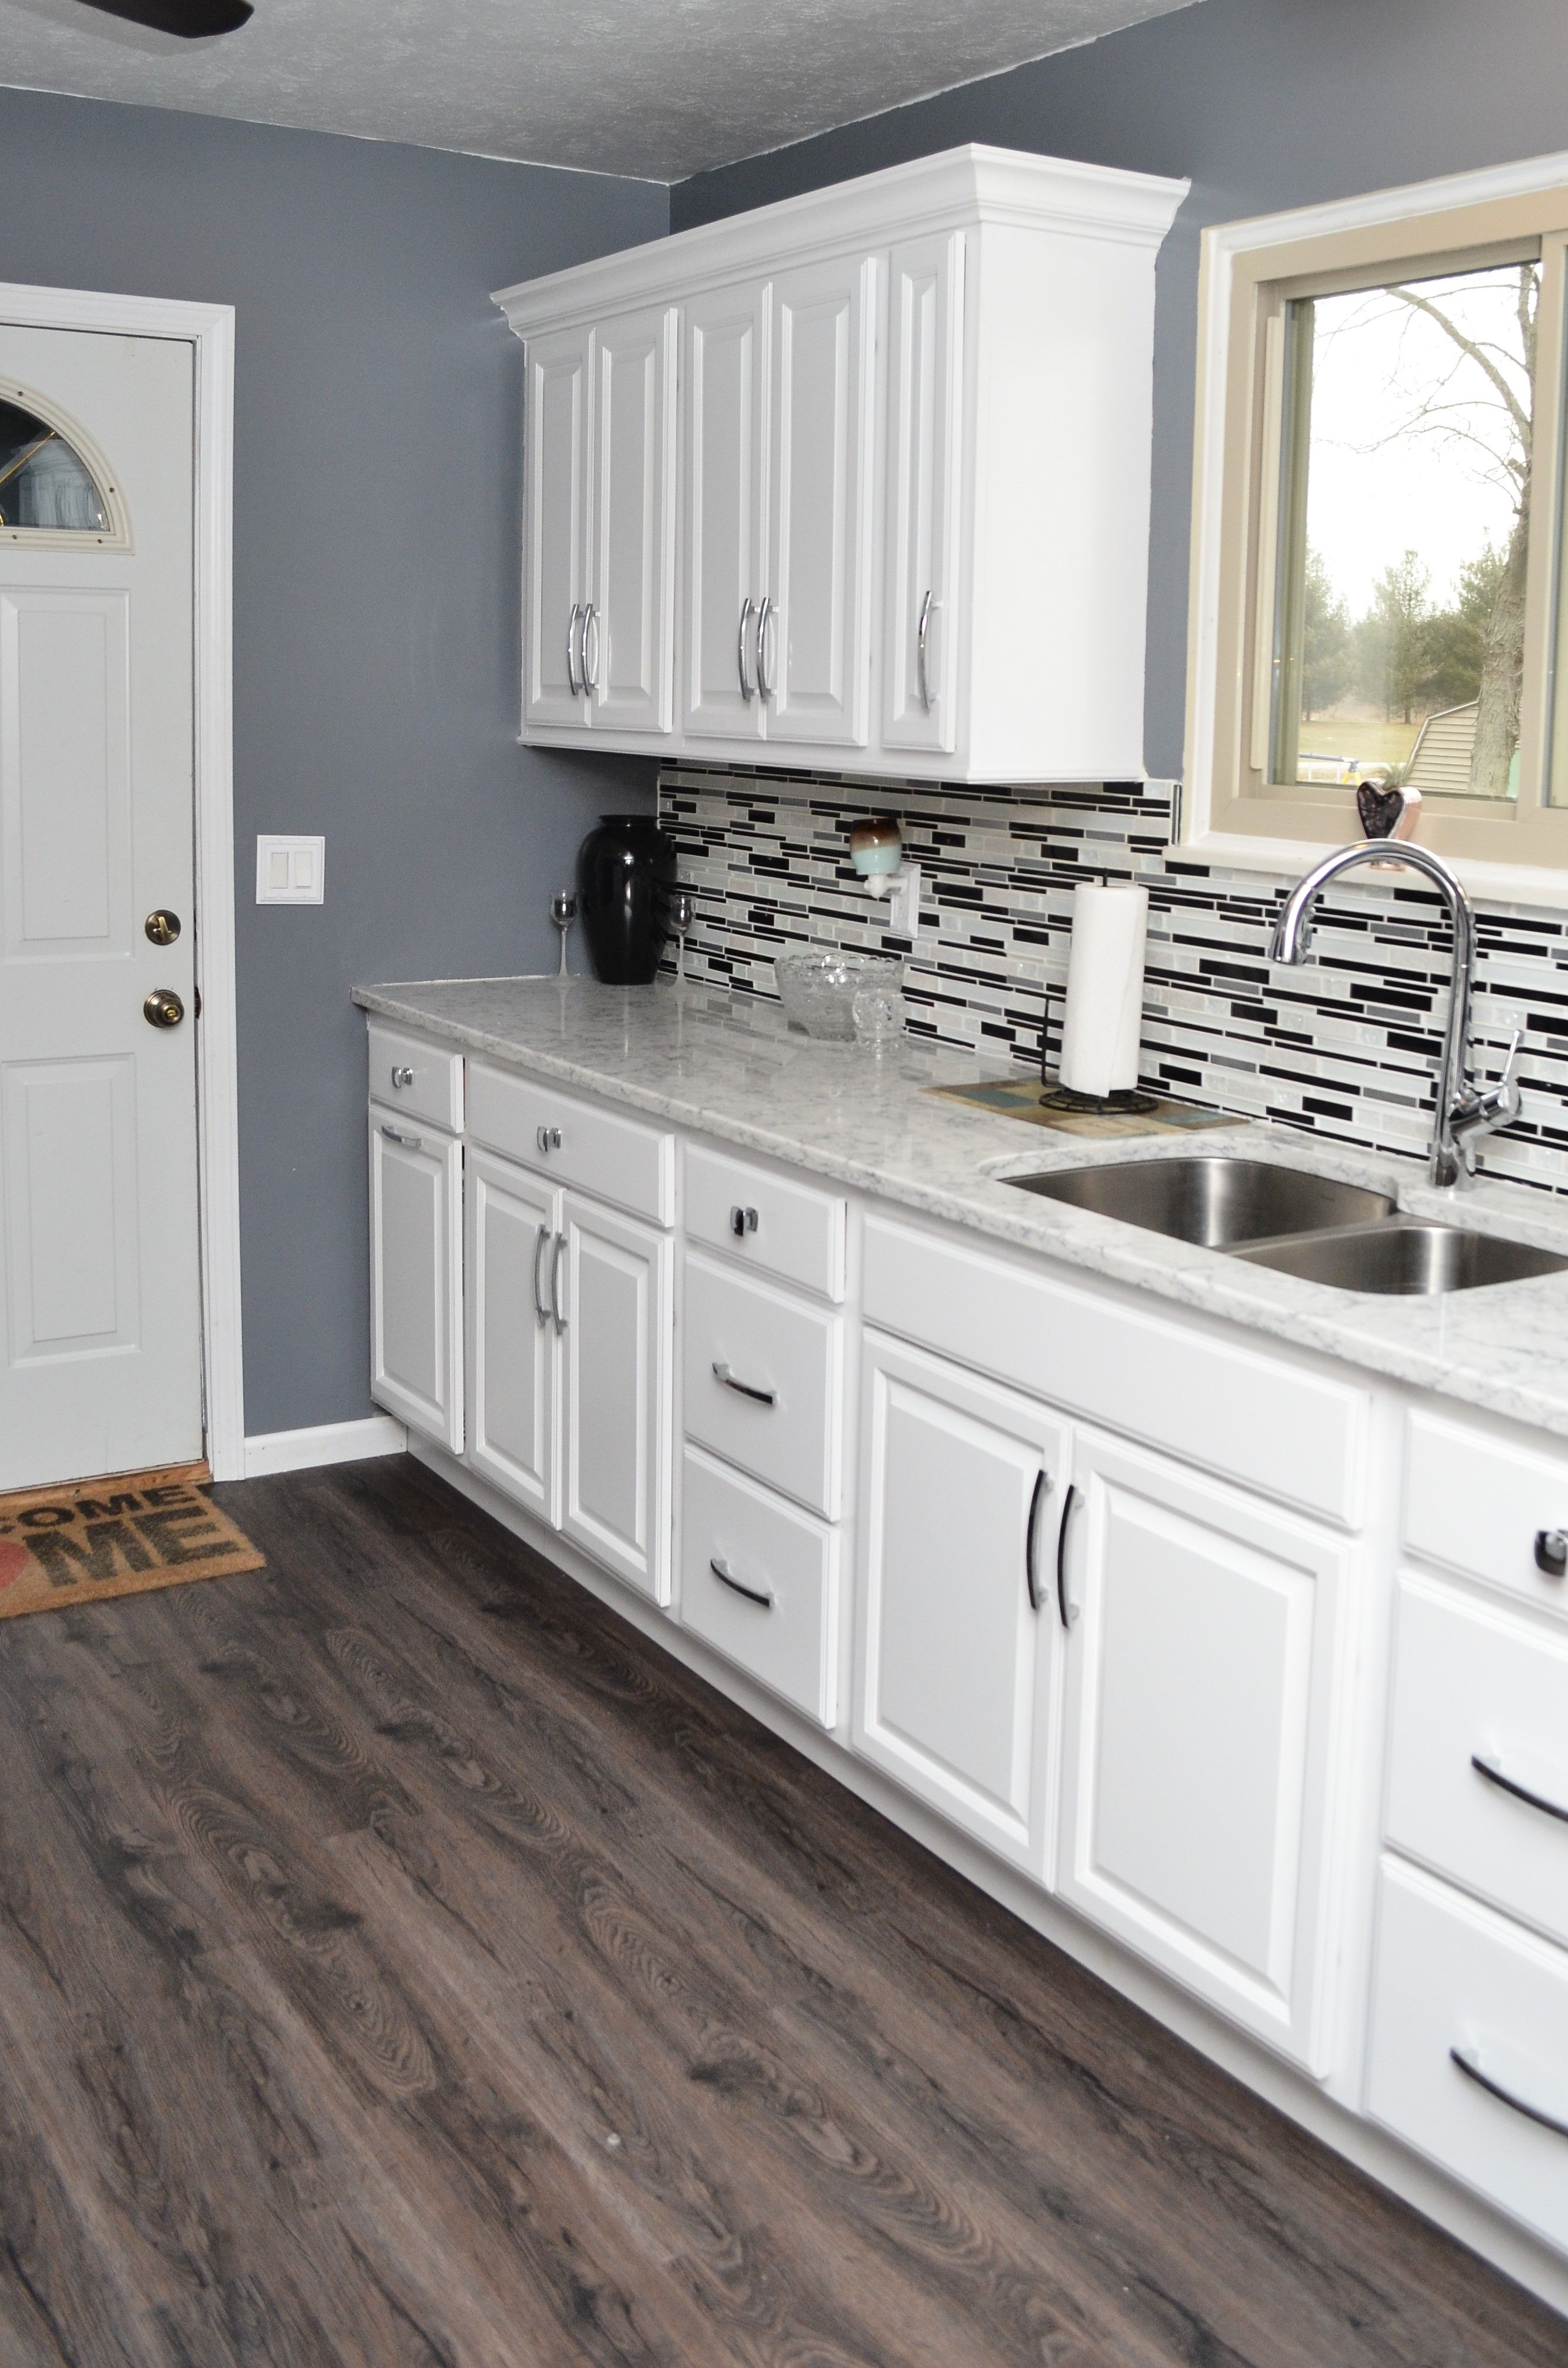 Haas Liberty Square White Maple | Kitchen cabinetry, White ...